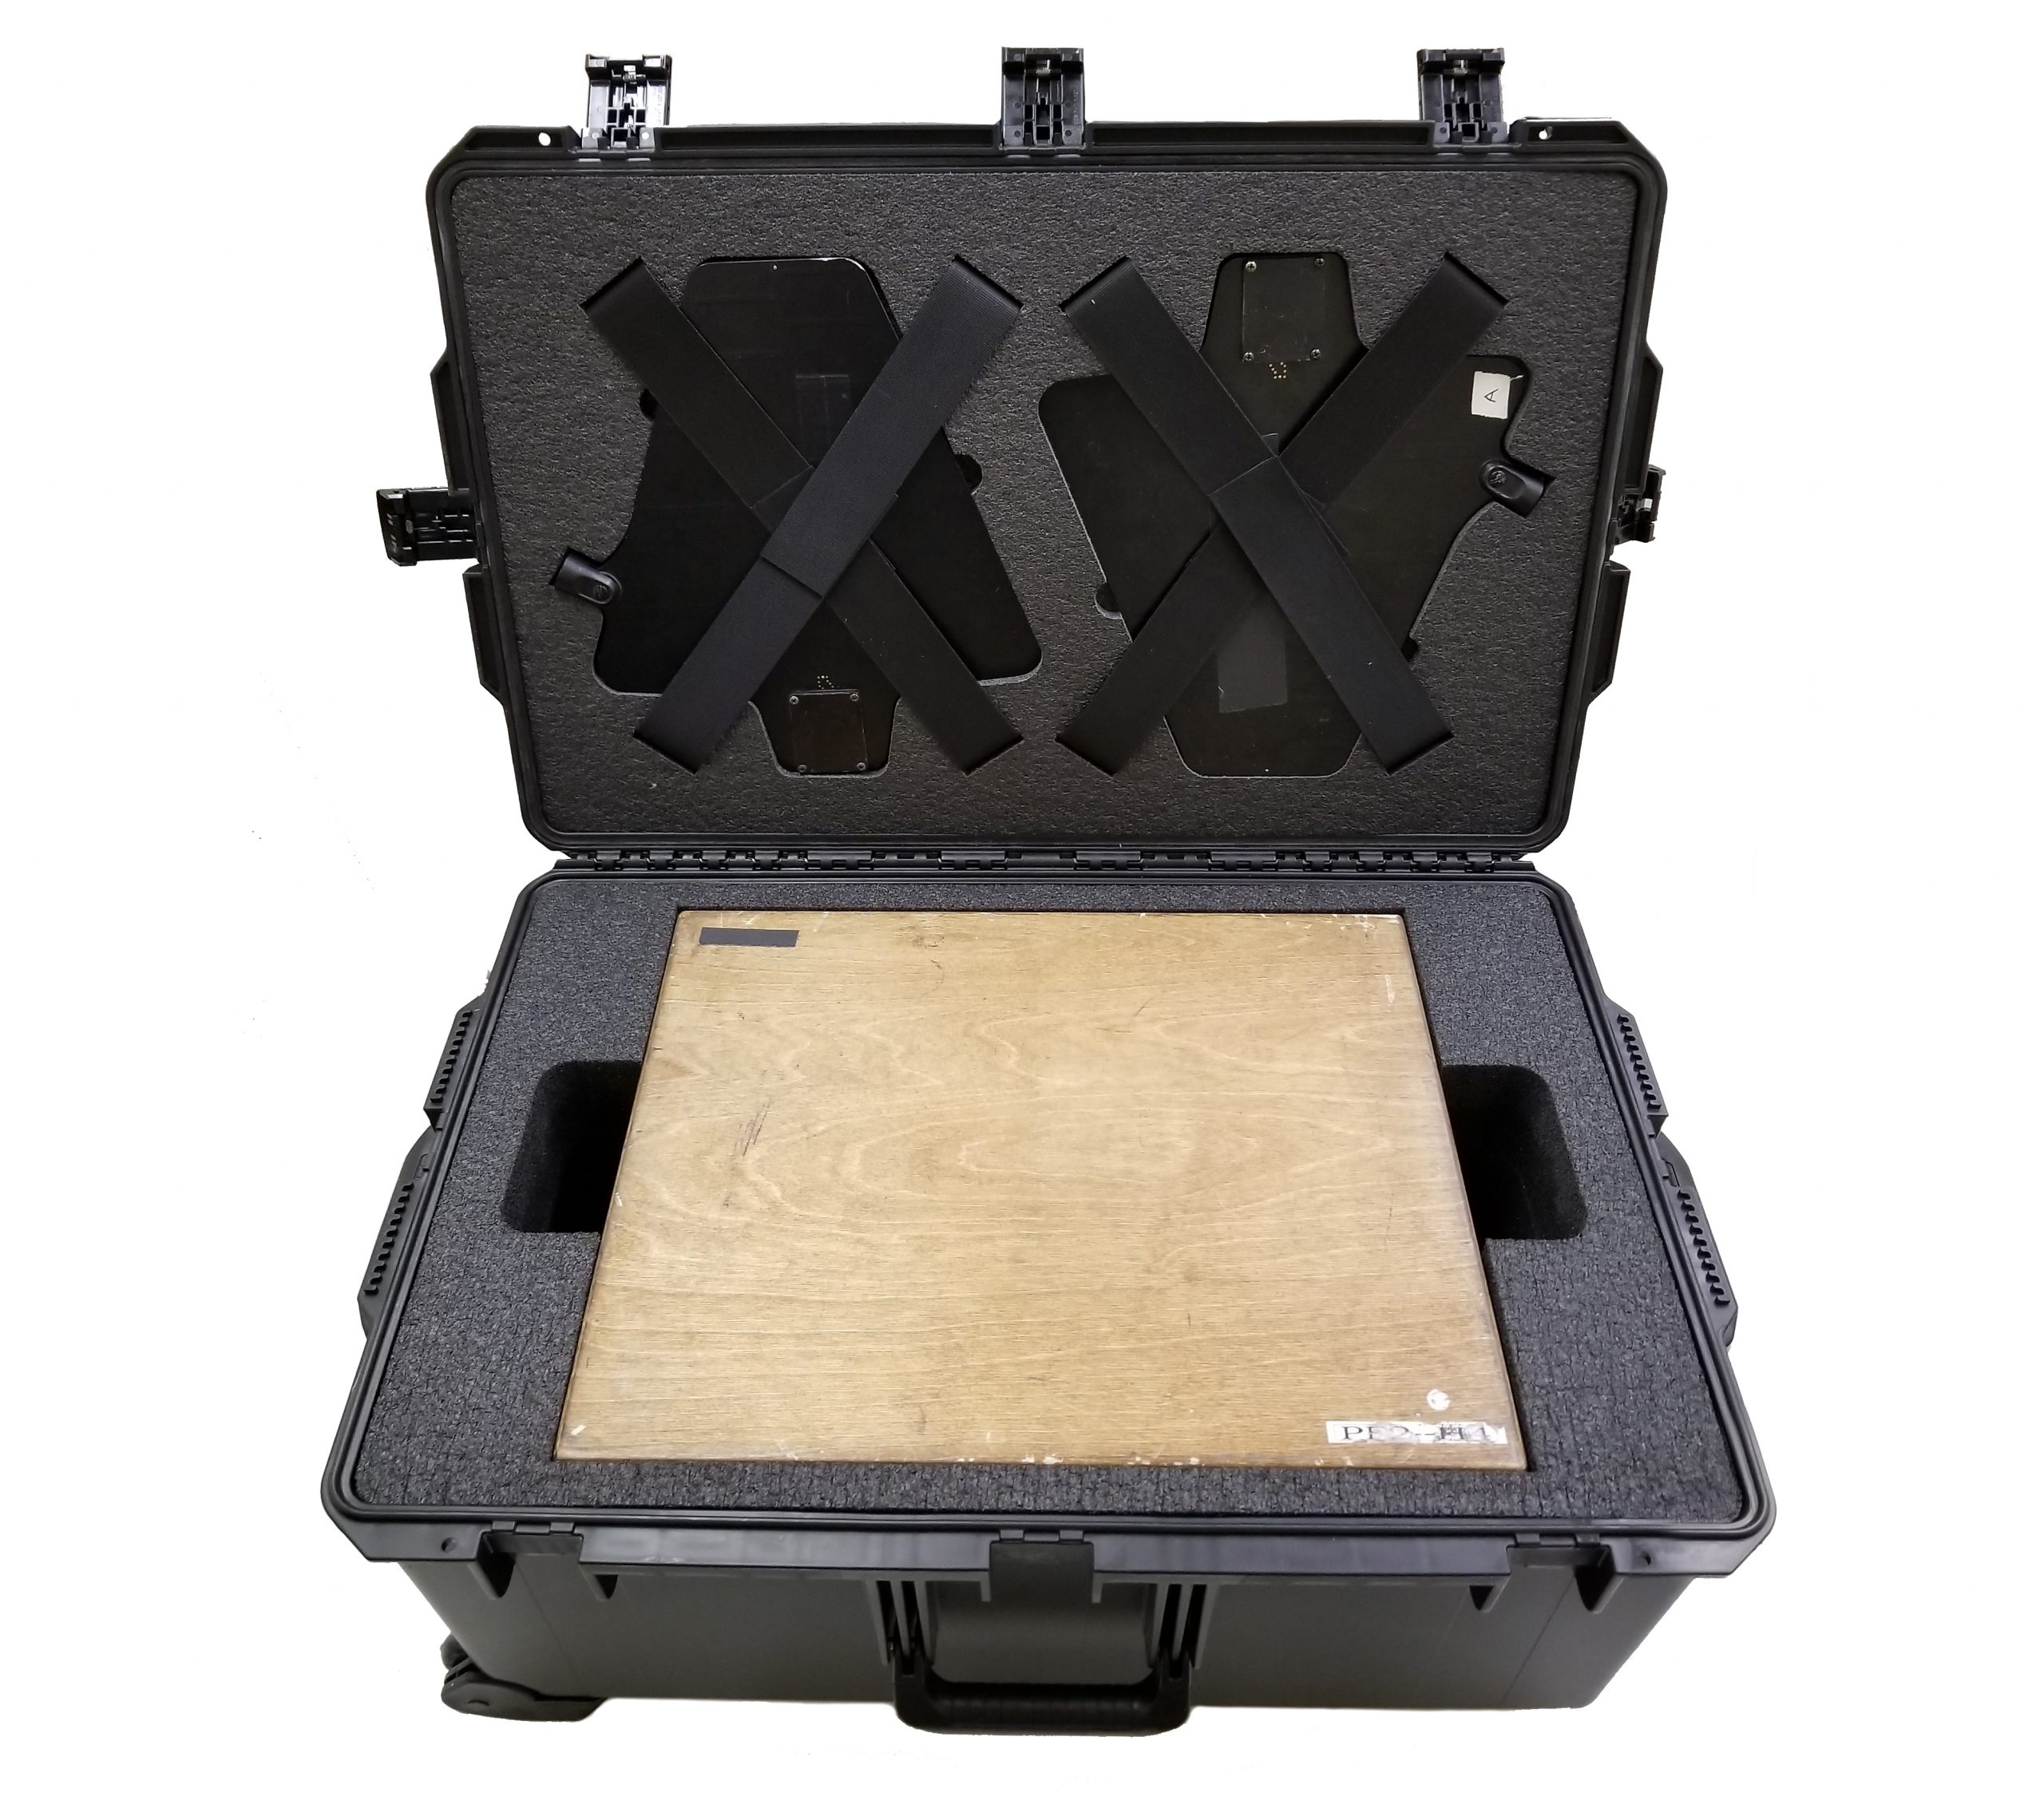 Custom Sound Recording and Microphone Receivers Foam Case Insert by Fush Cases